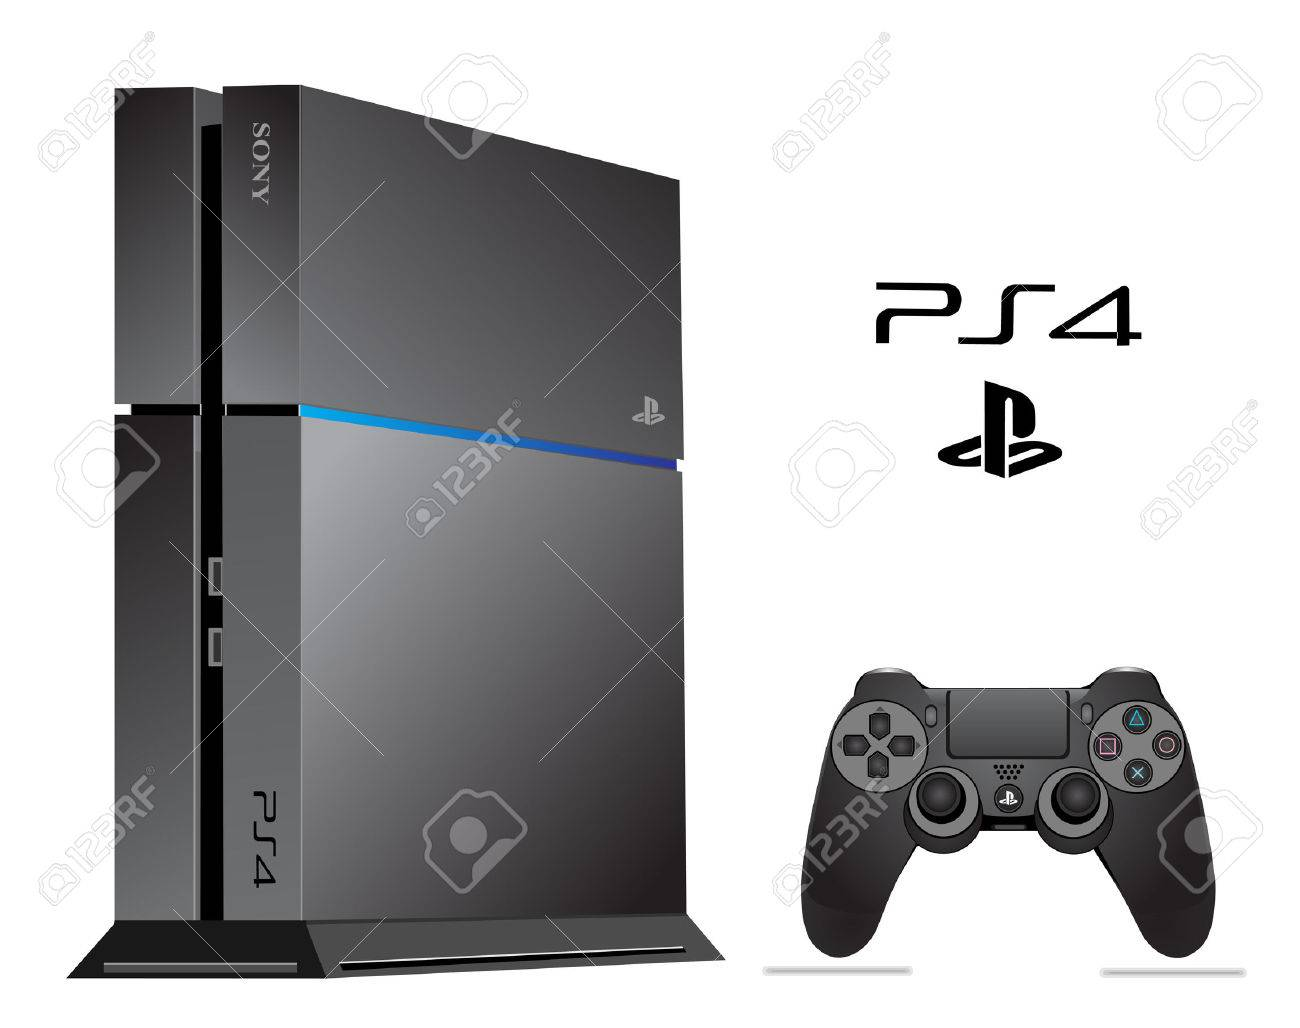 Sony Playstation 4 Banque d'images - 26278152